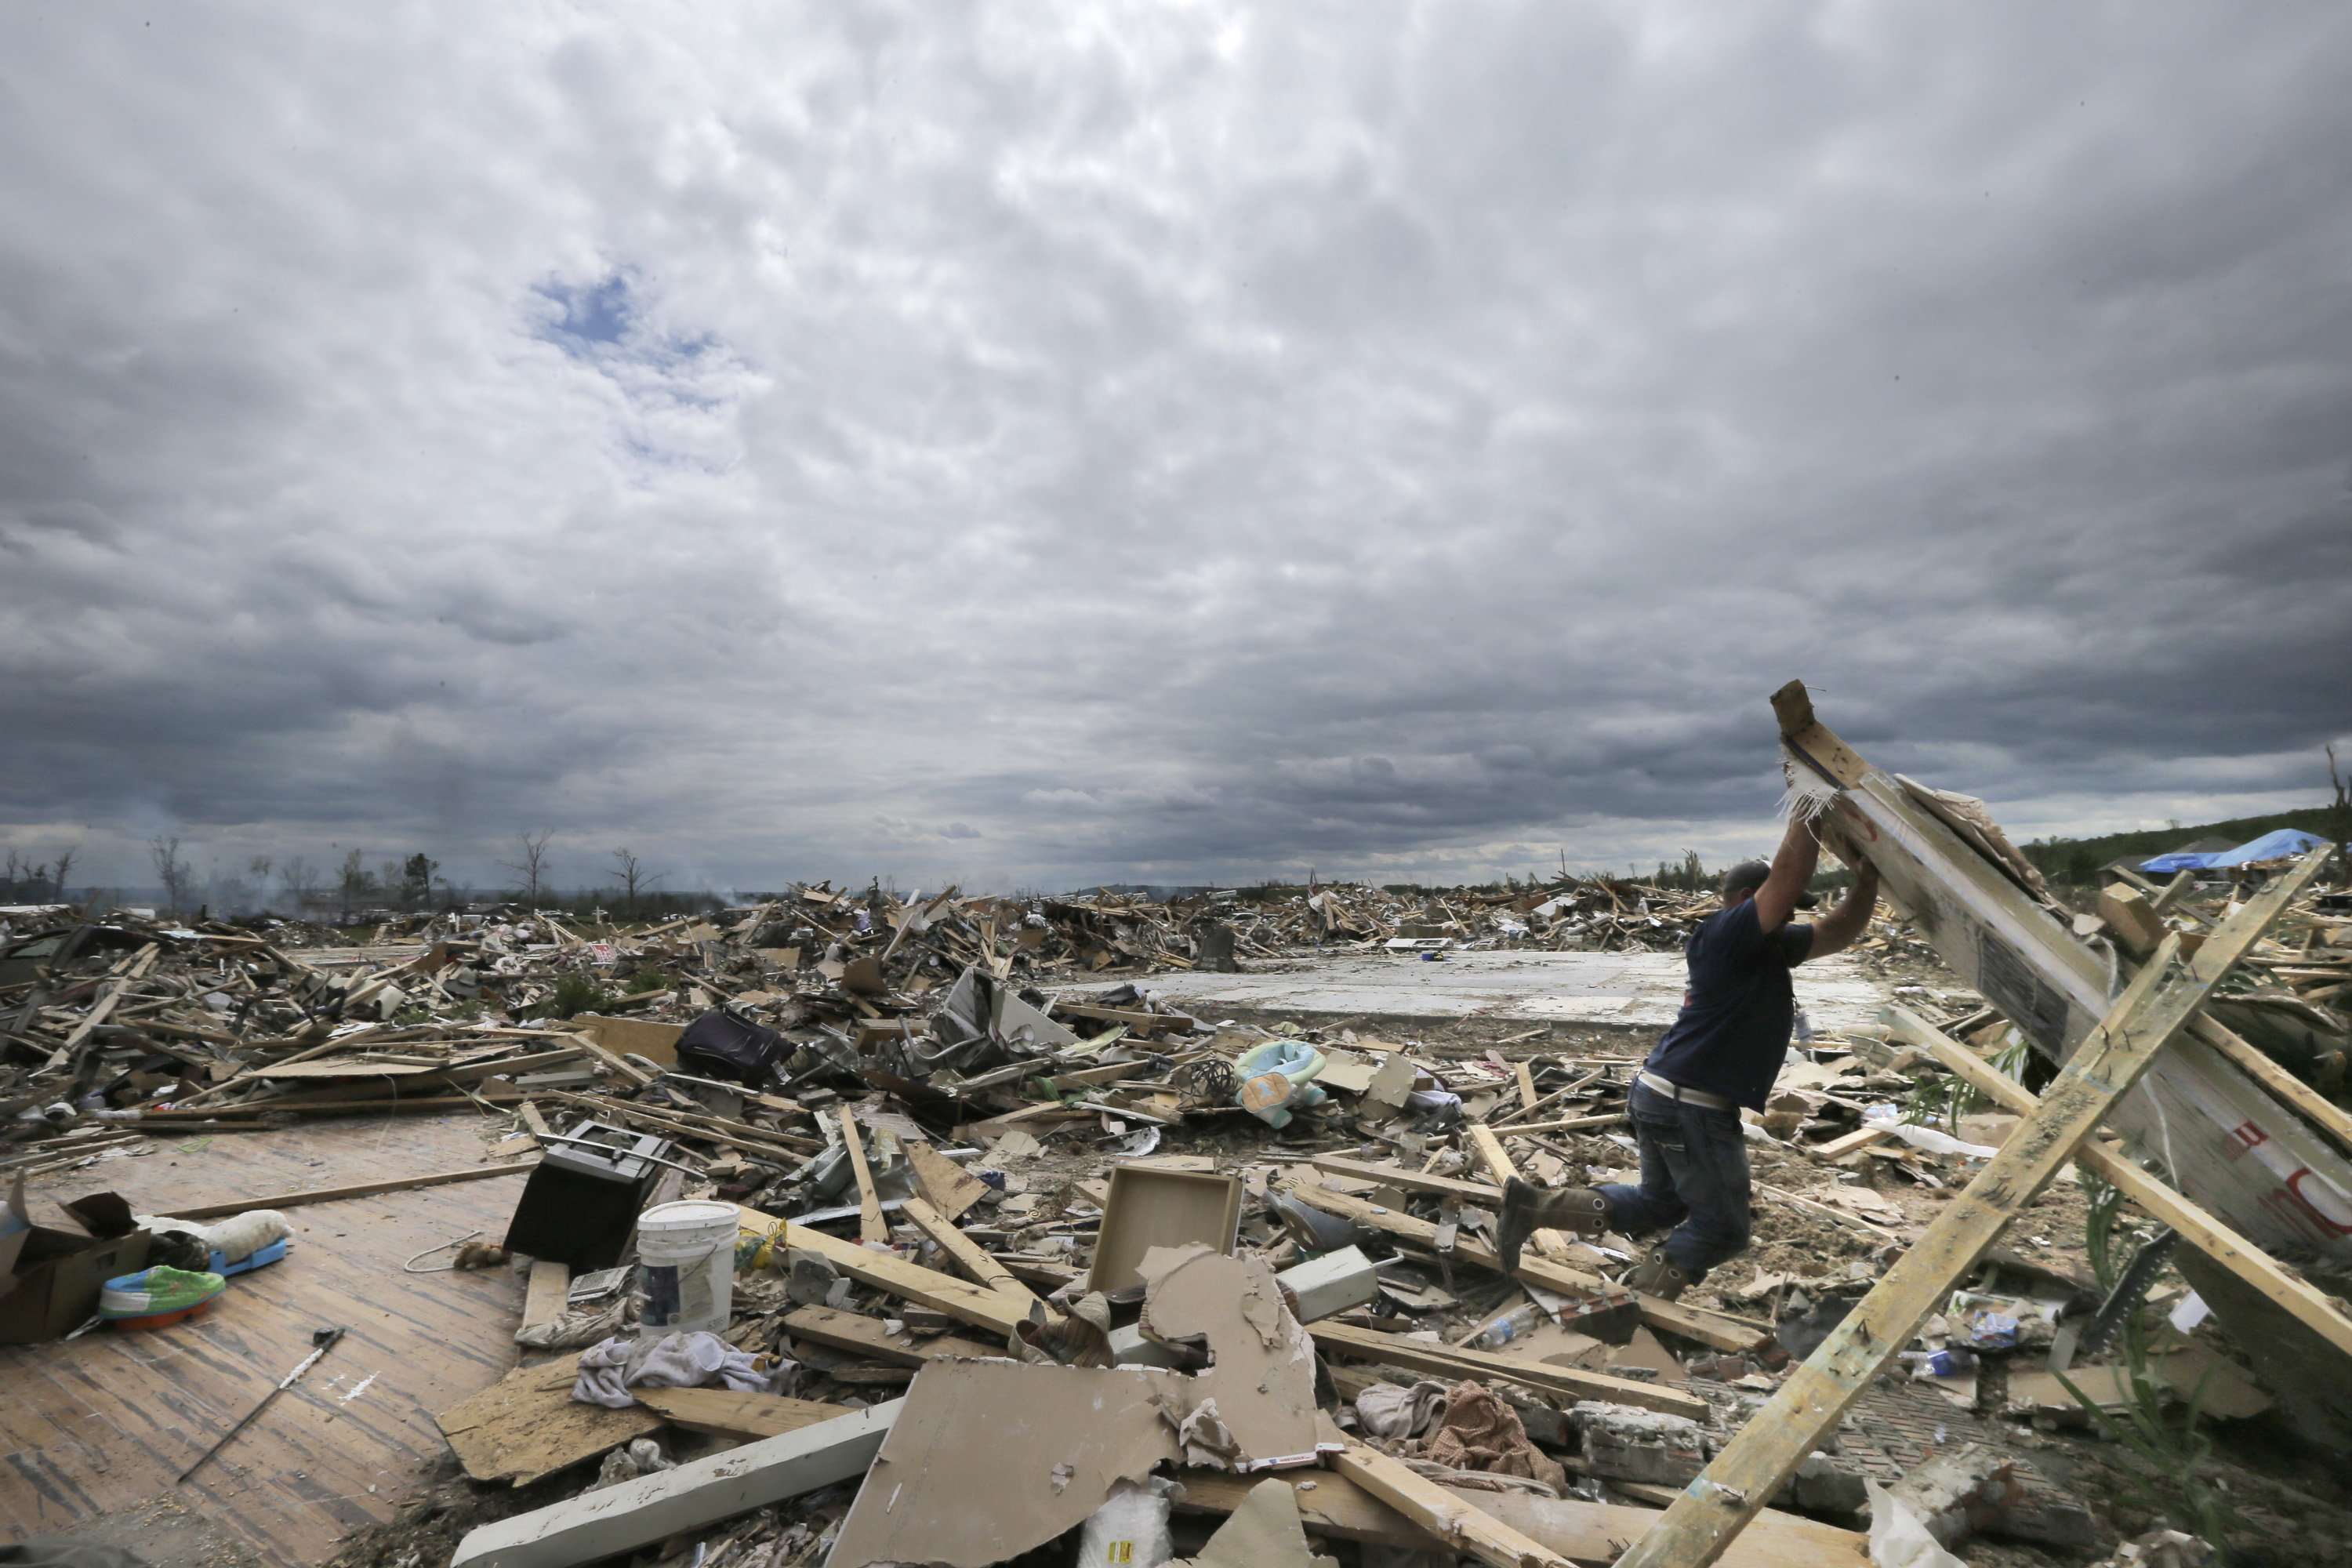 FILE - In this April 30, 2014, file photo, Dustin Shaw lifts debris as he searches through what is left of his sister's house at Parkwood Meadows neighborhood after a tornado in Vilonia, Ark. A new study finds that tornado activity is generally shifting eastward to areas just east of the Mississippi River that are more vulnerable such as Mississippi, Arkansas and Tennessee. And it's going down in Oklahoma, Kansas and Texas. (AP Photo/Danny Johnston, File)